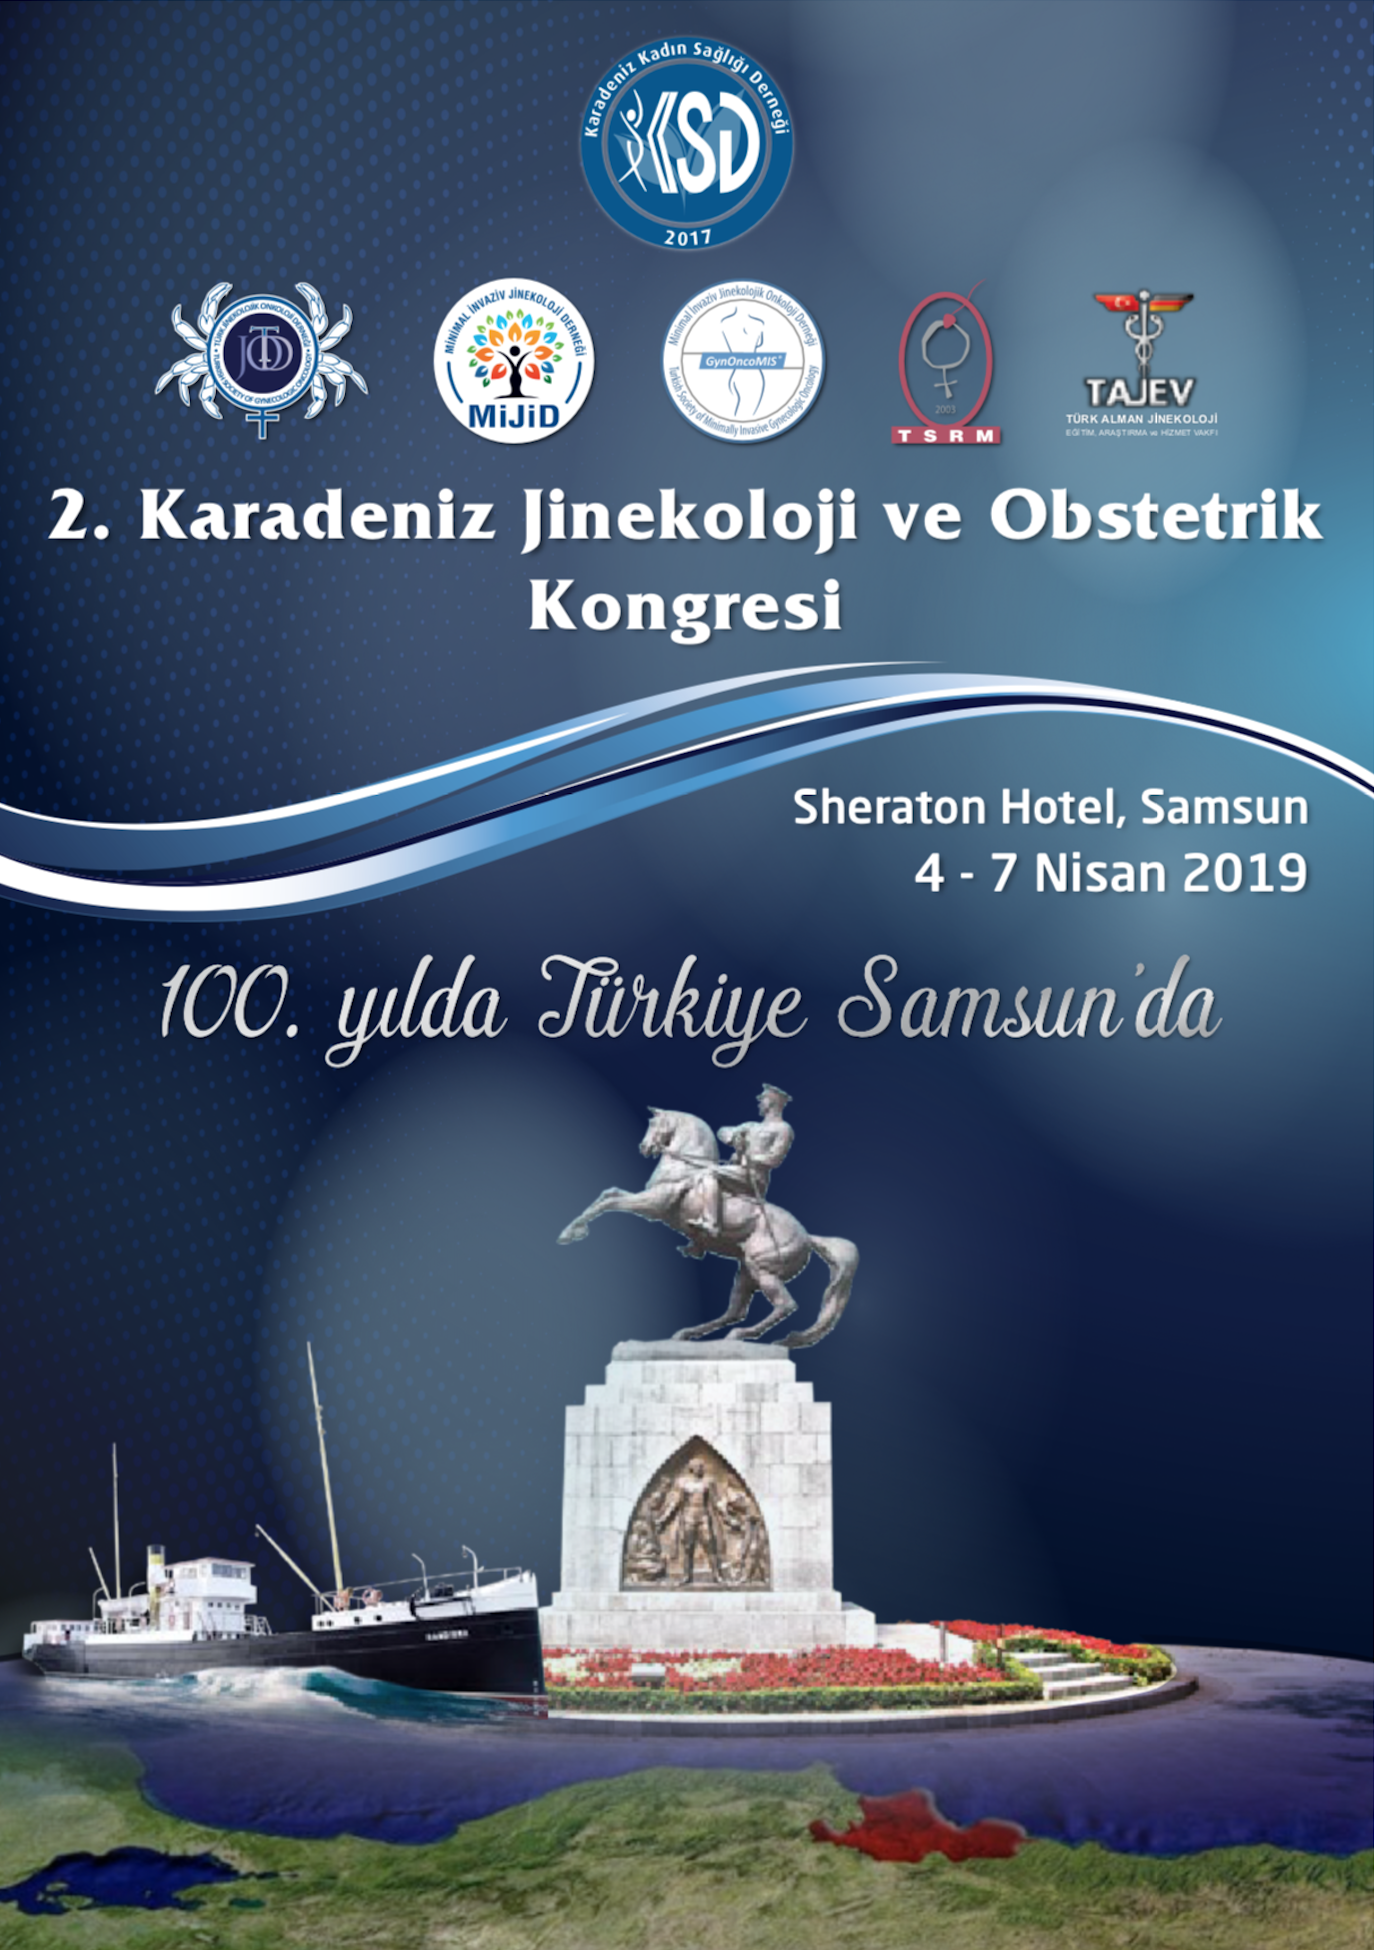 http://www.omu.edu.tr/sites/default/files/2.karadeniz_jinekoloji_ve_obstetrik_kongresi_2019.png